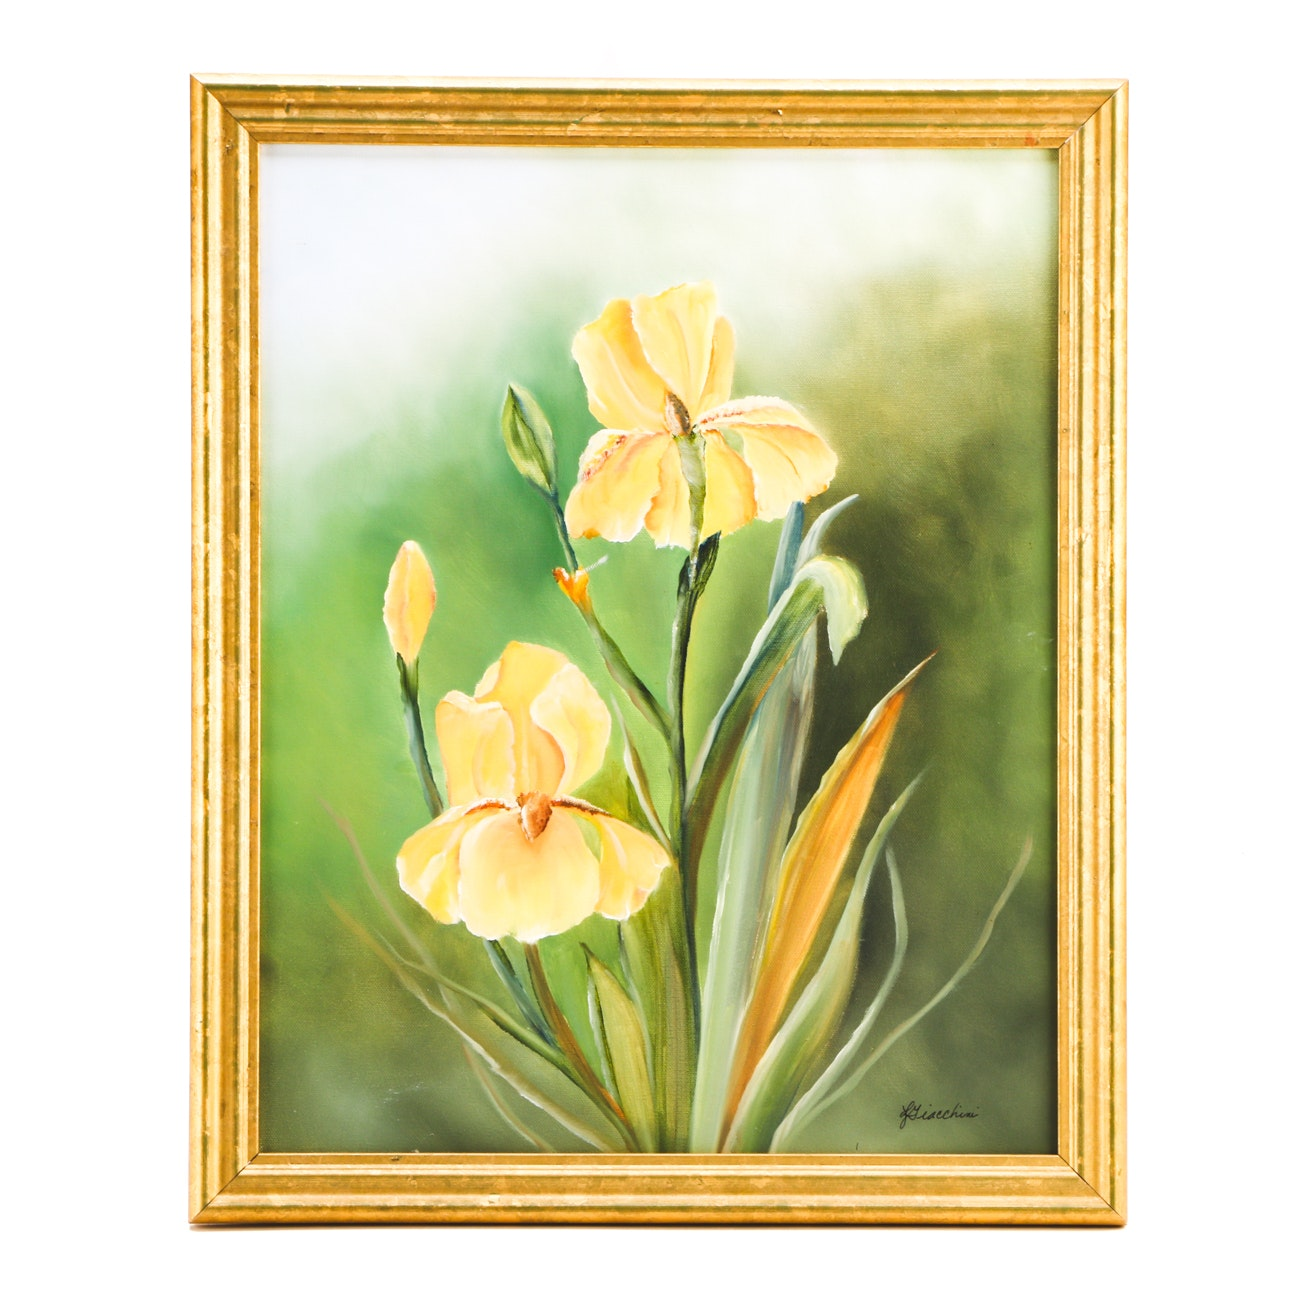 Laura Giacchini Acrylic Painting on Canvas of Yellow Iris Flowers